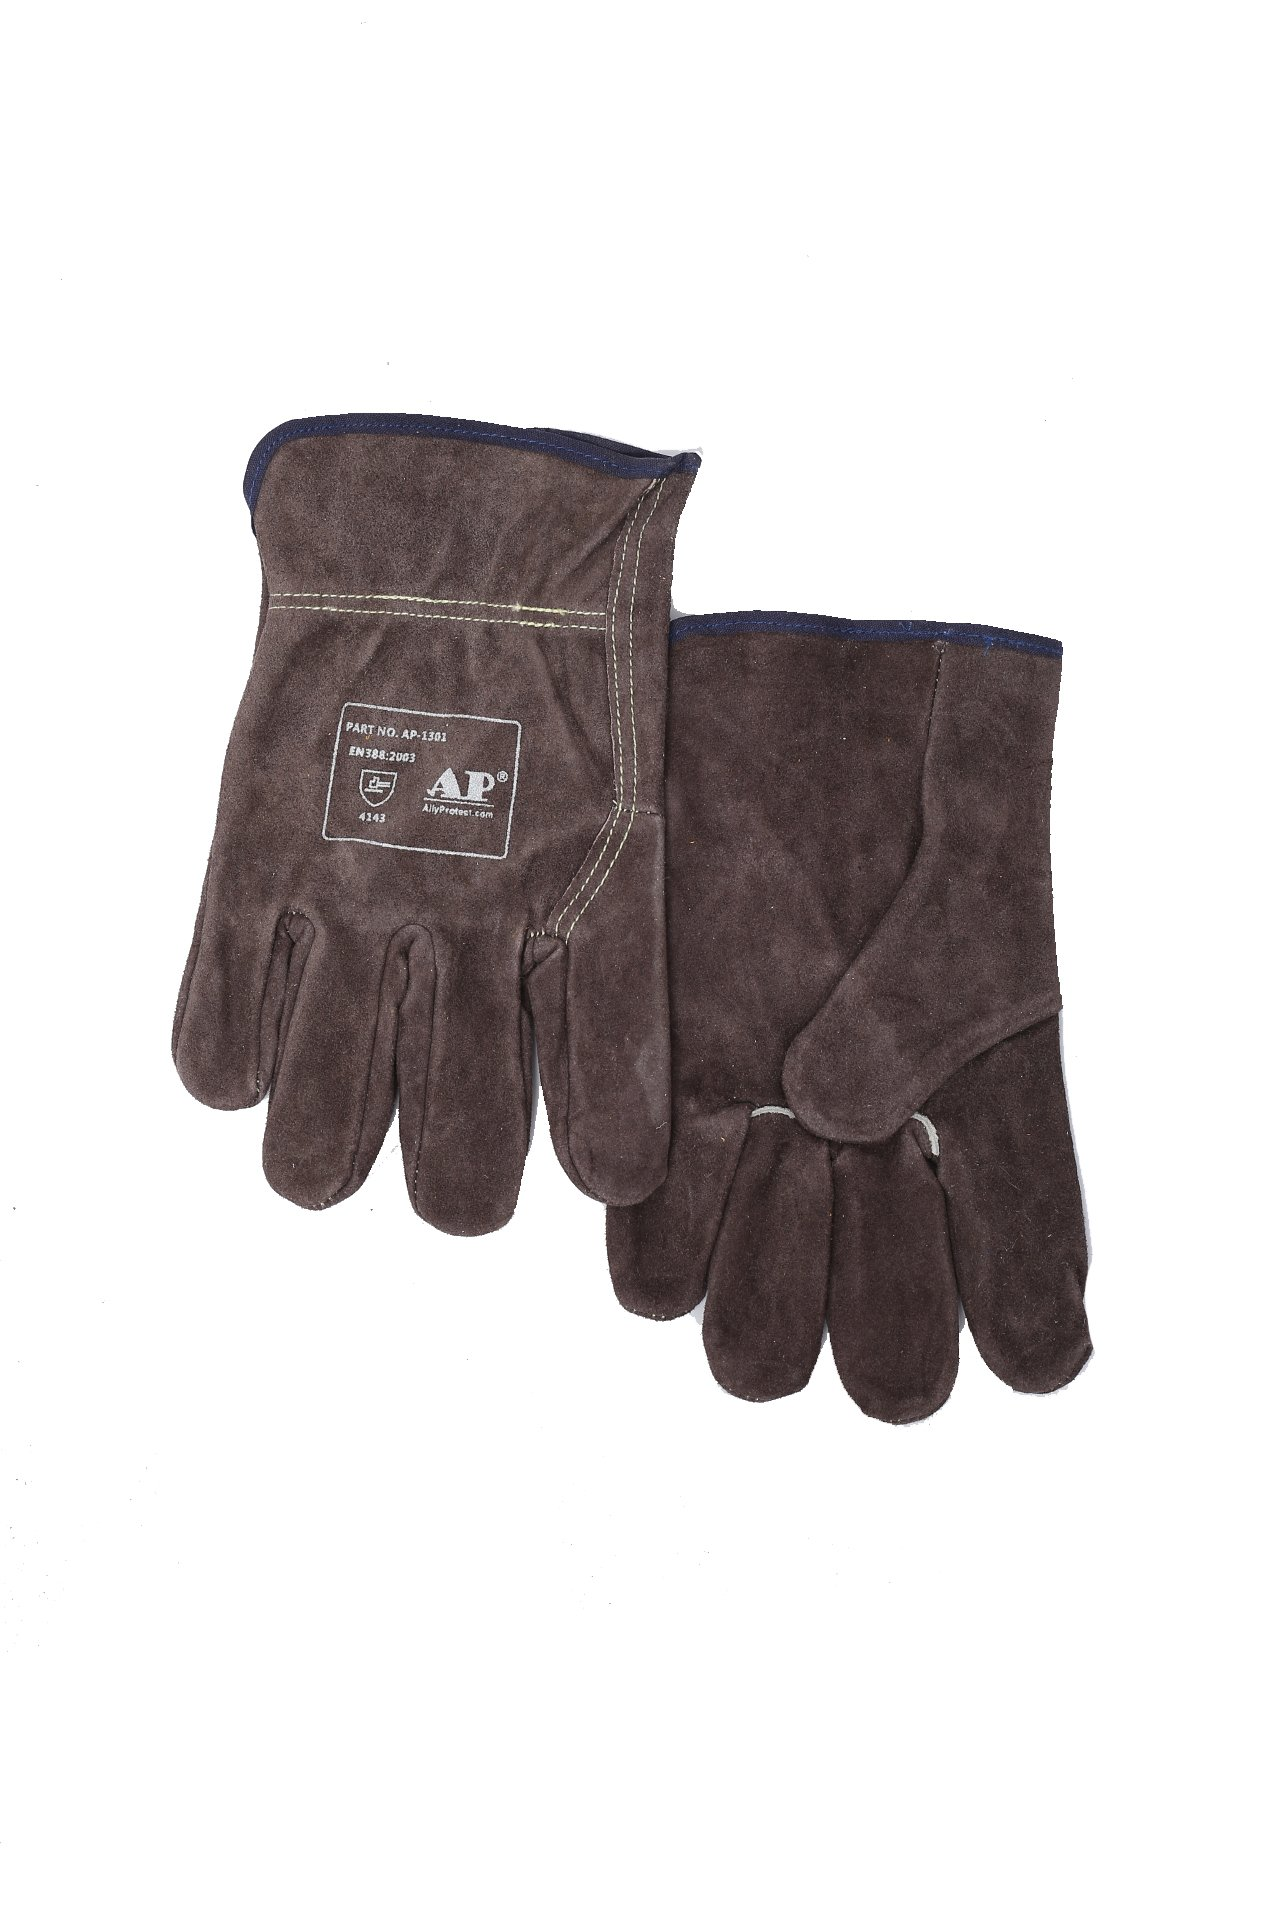 AP-1301 Brown Cowhide Leather Work Gloves with Elastic Wrist for Men & Women size XL by AP